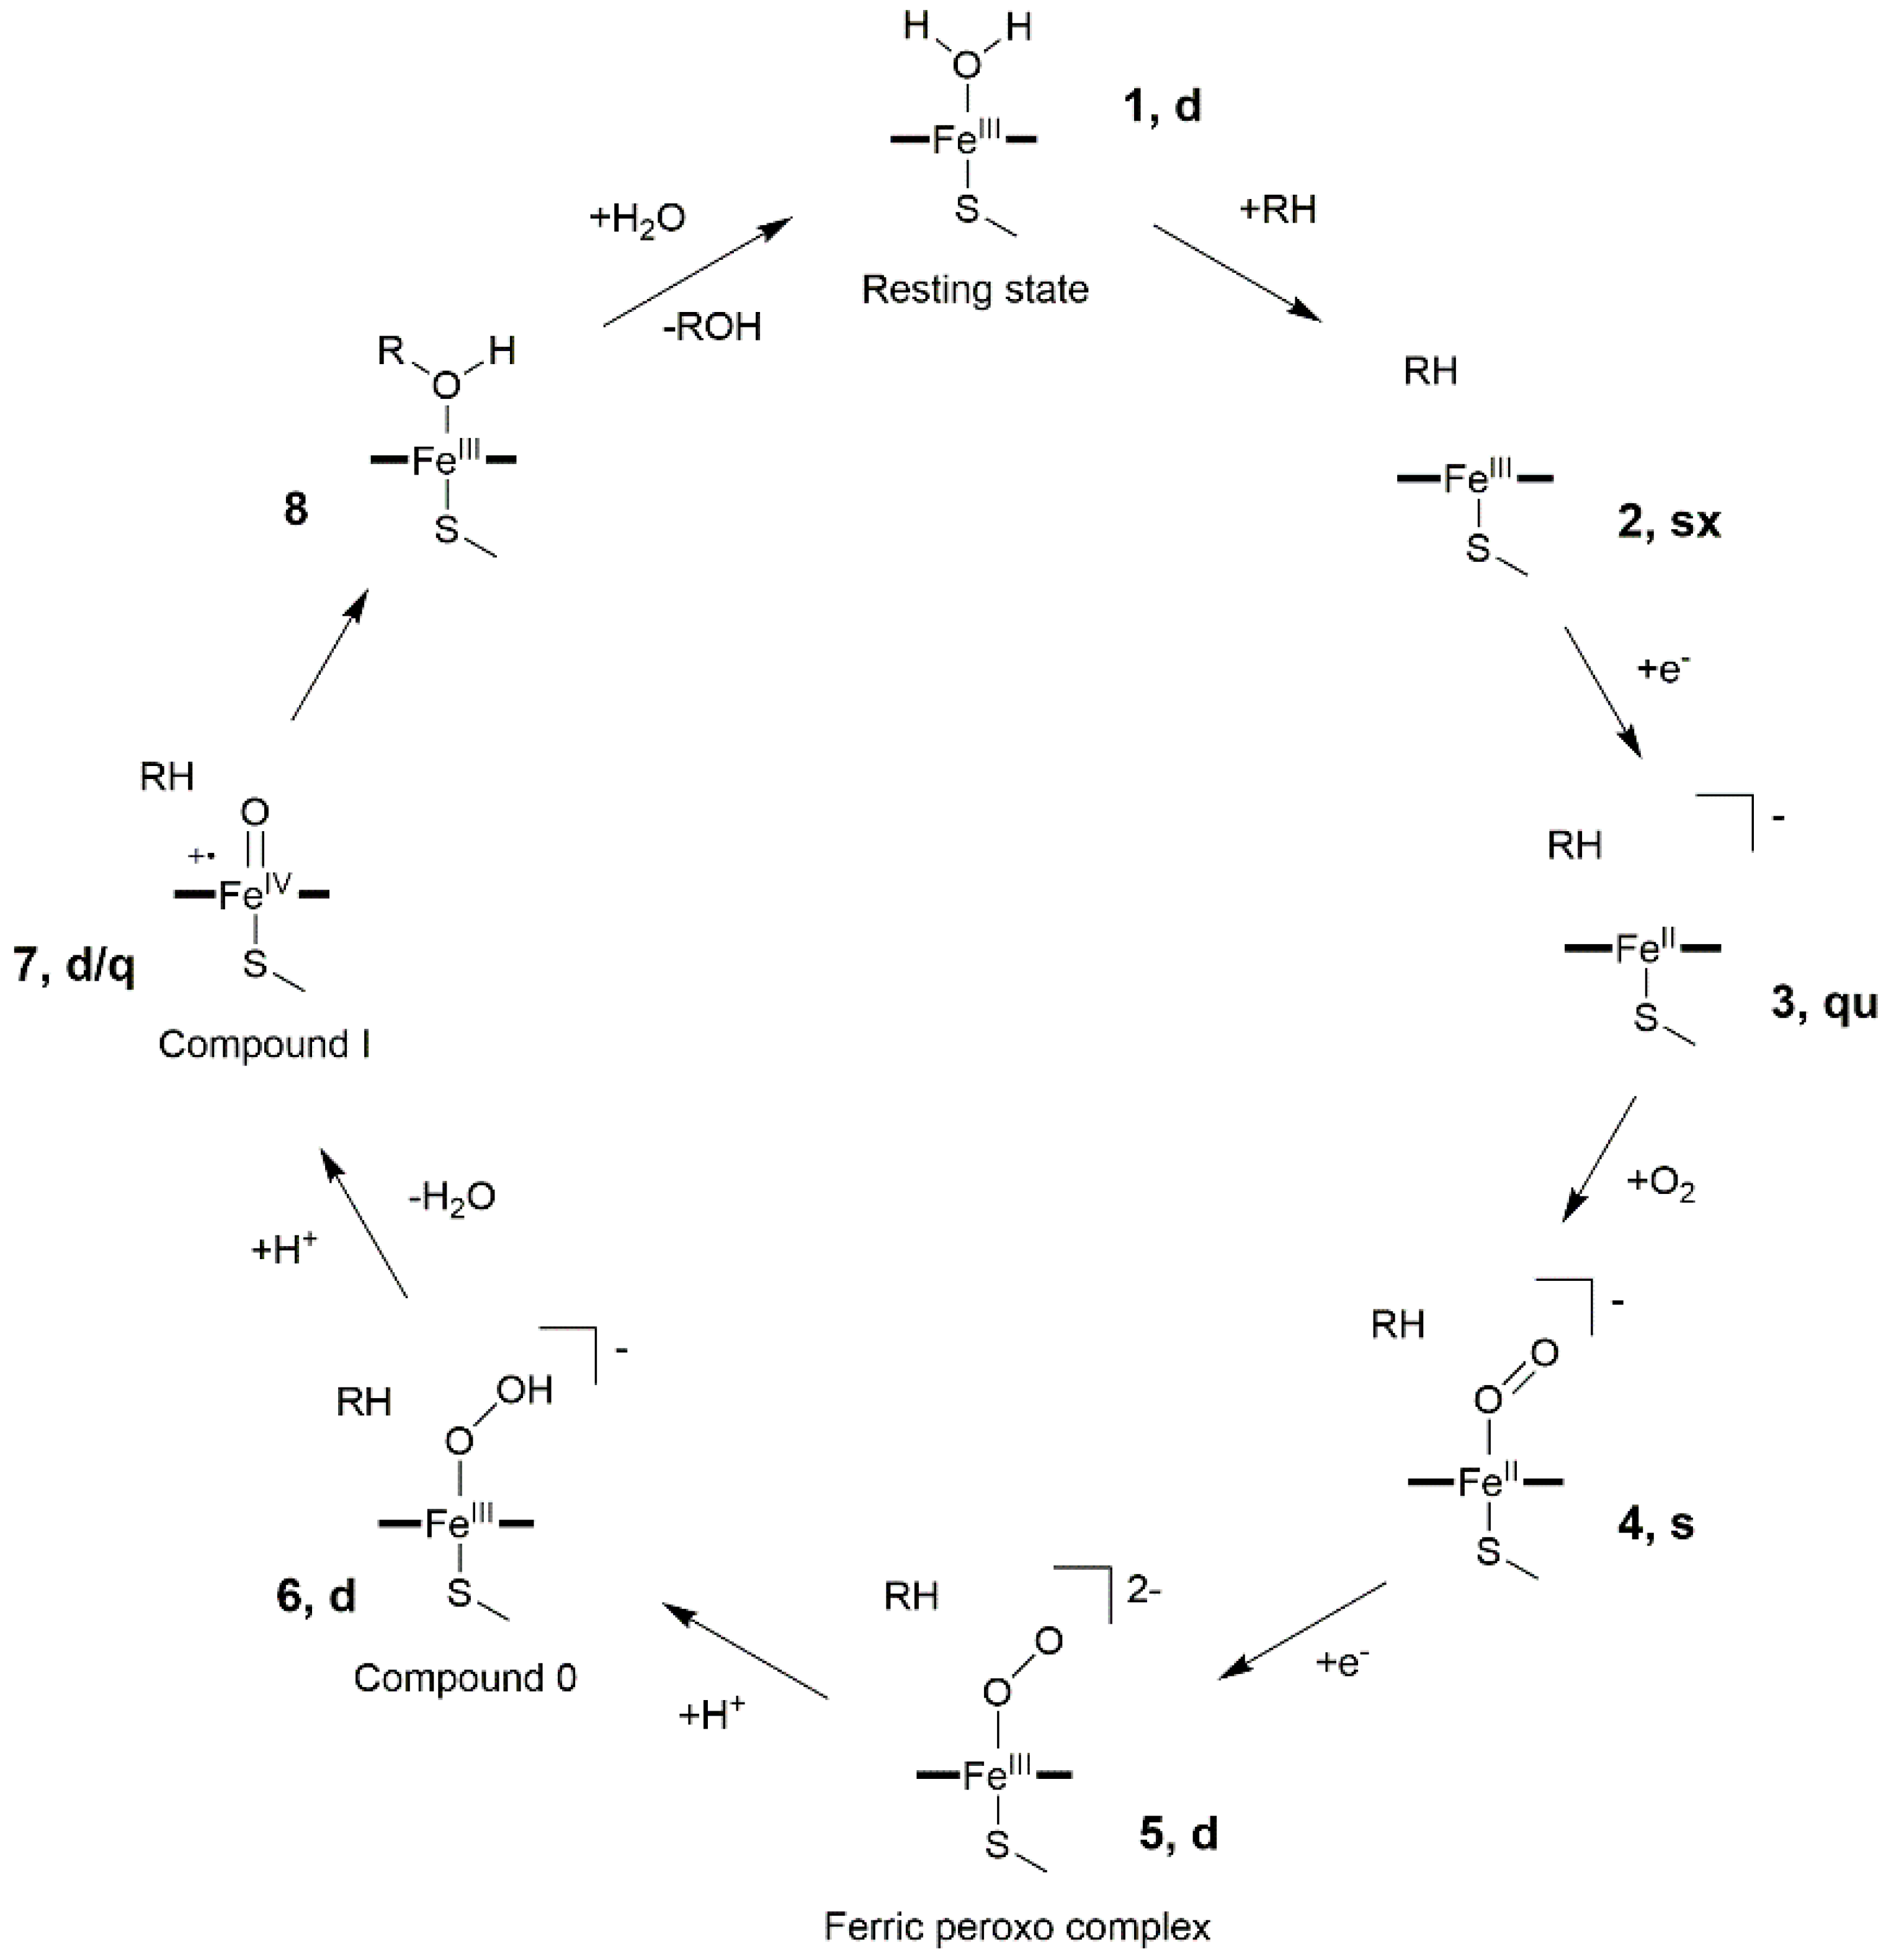 Catalysts | Free Full-Text | The Catalytic Mechanism of